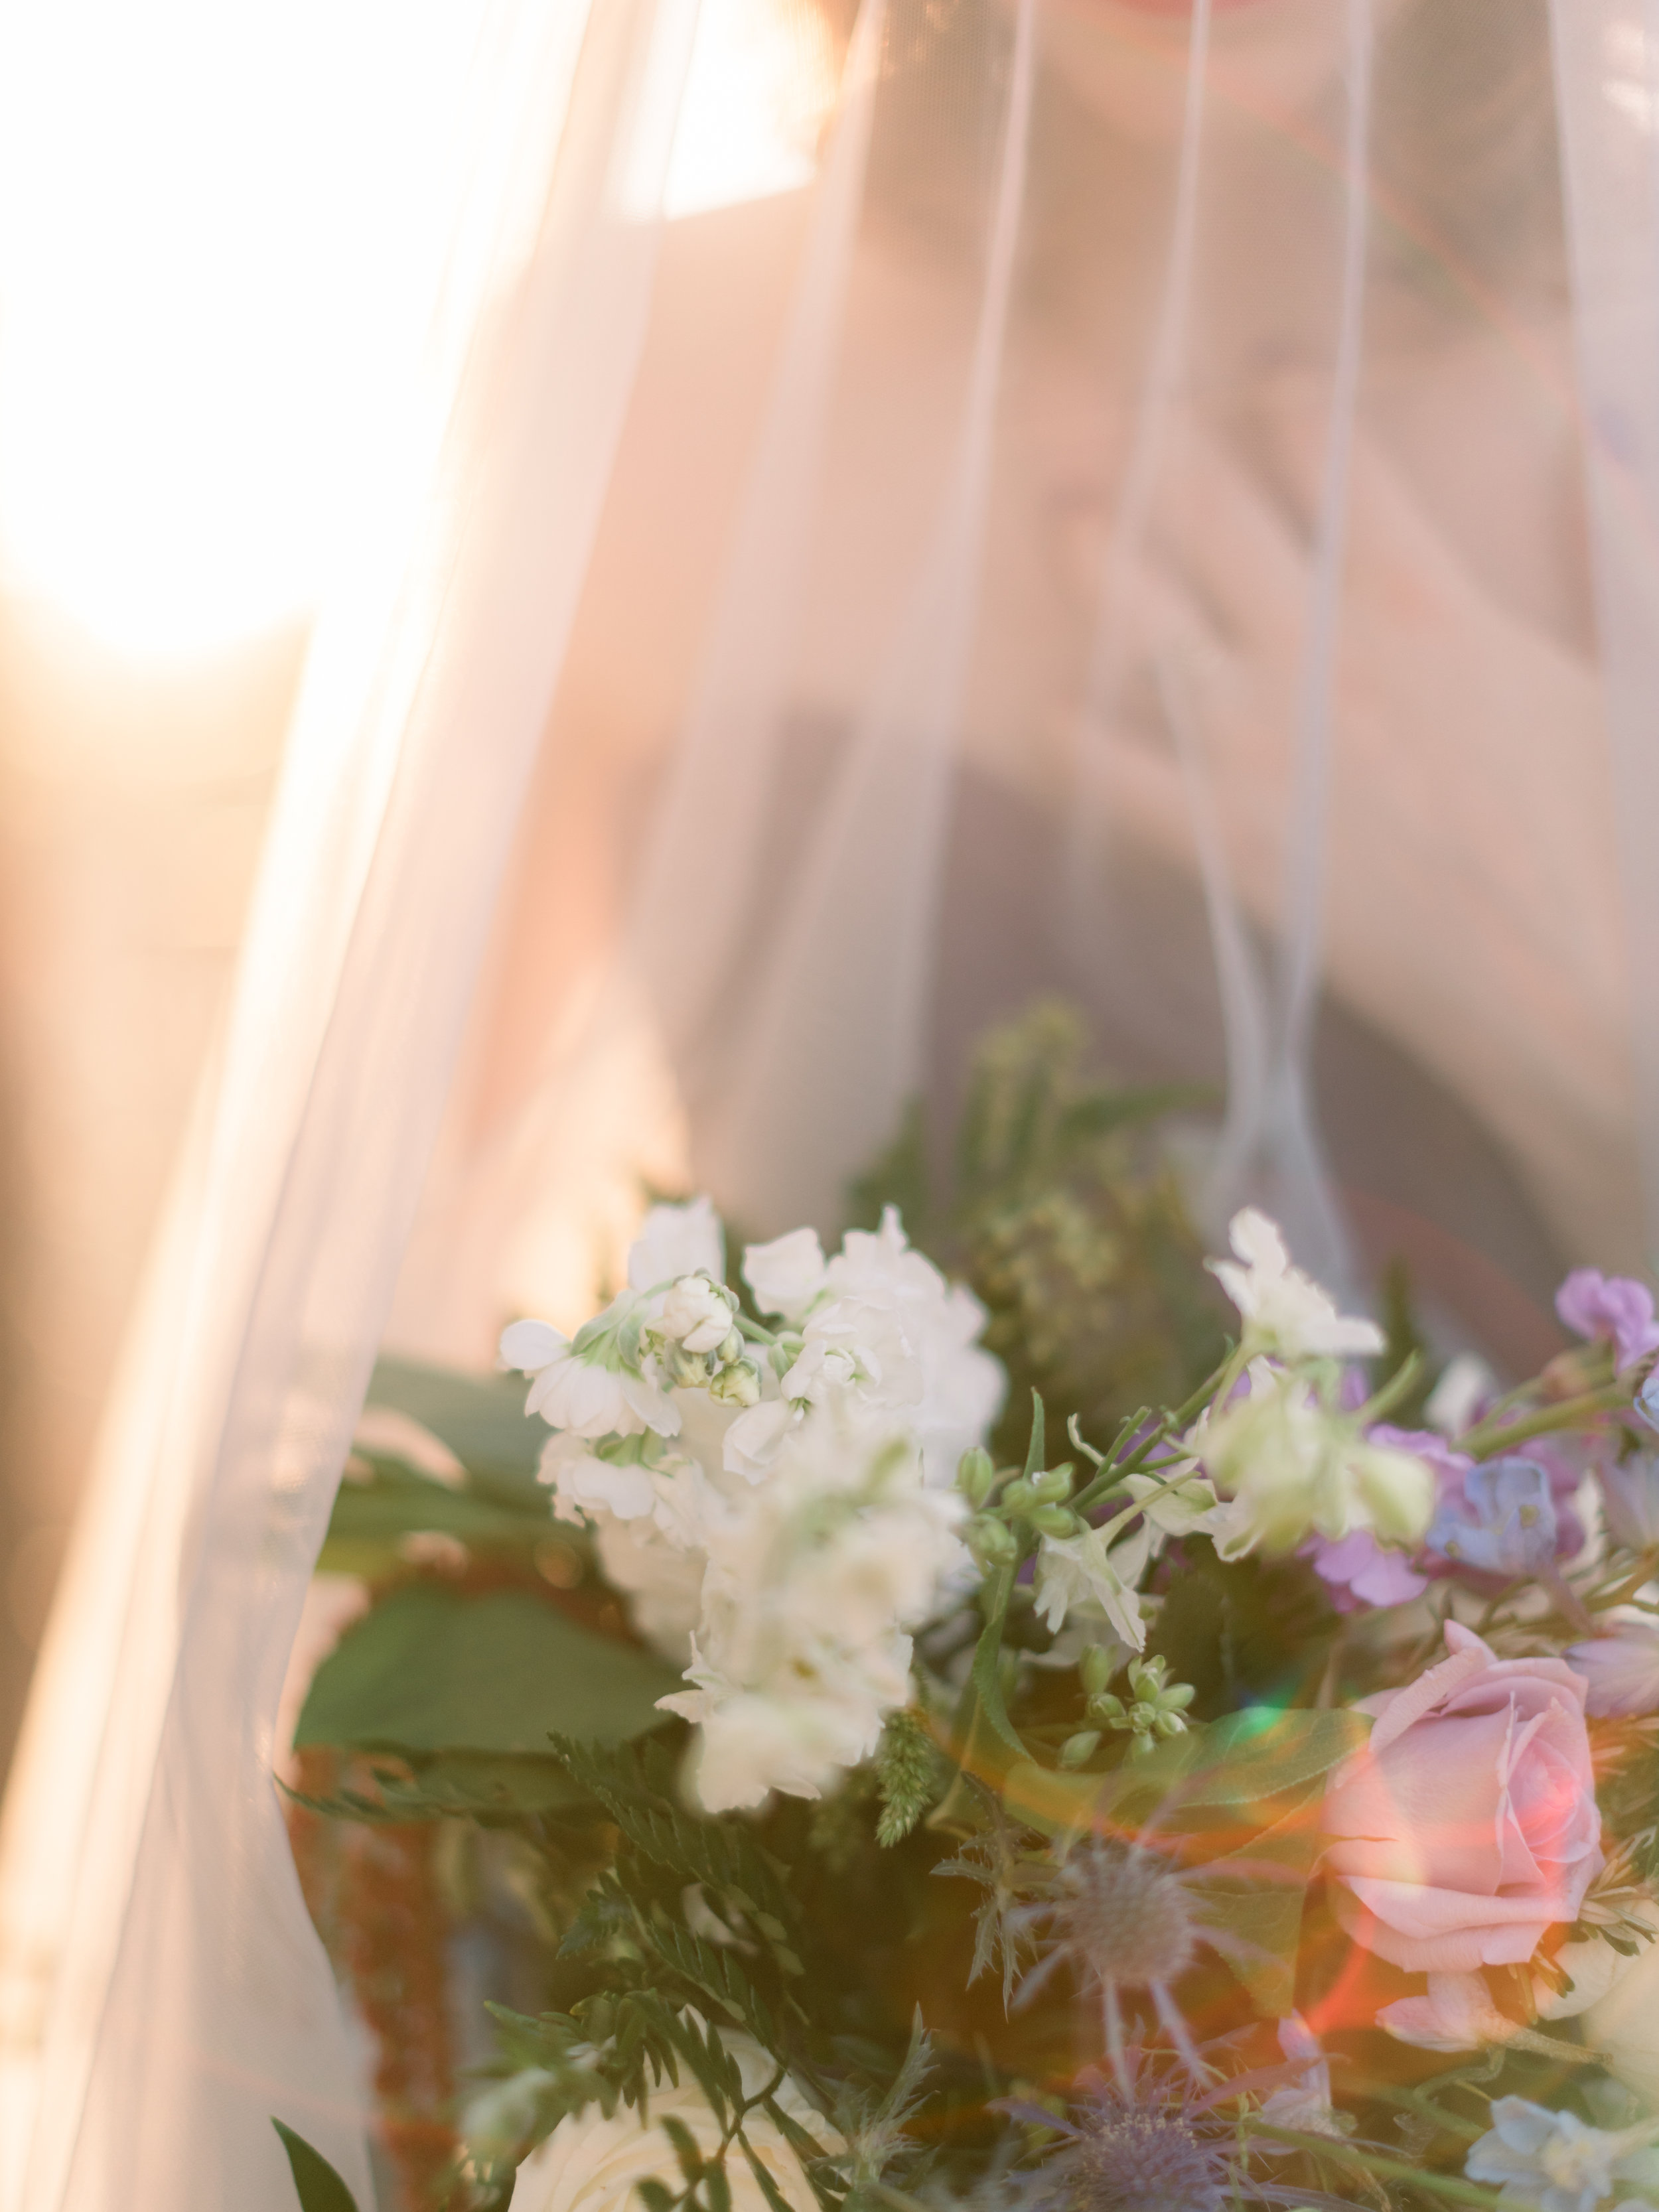 bridesmaid-holding-a-bouquet-at-sunset.jpg